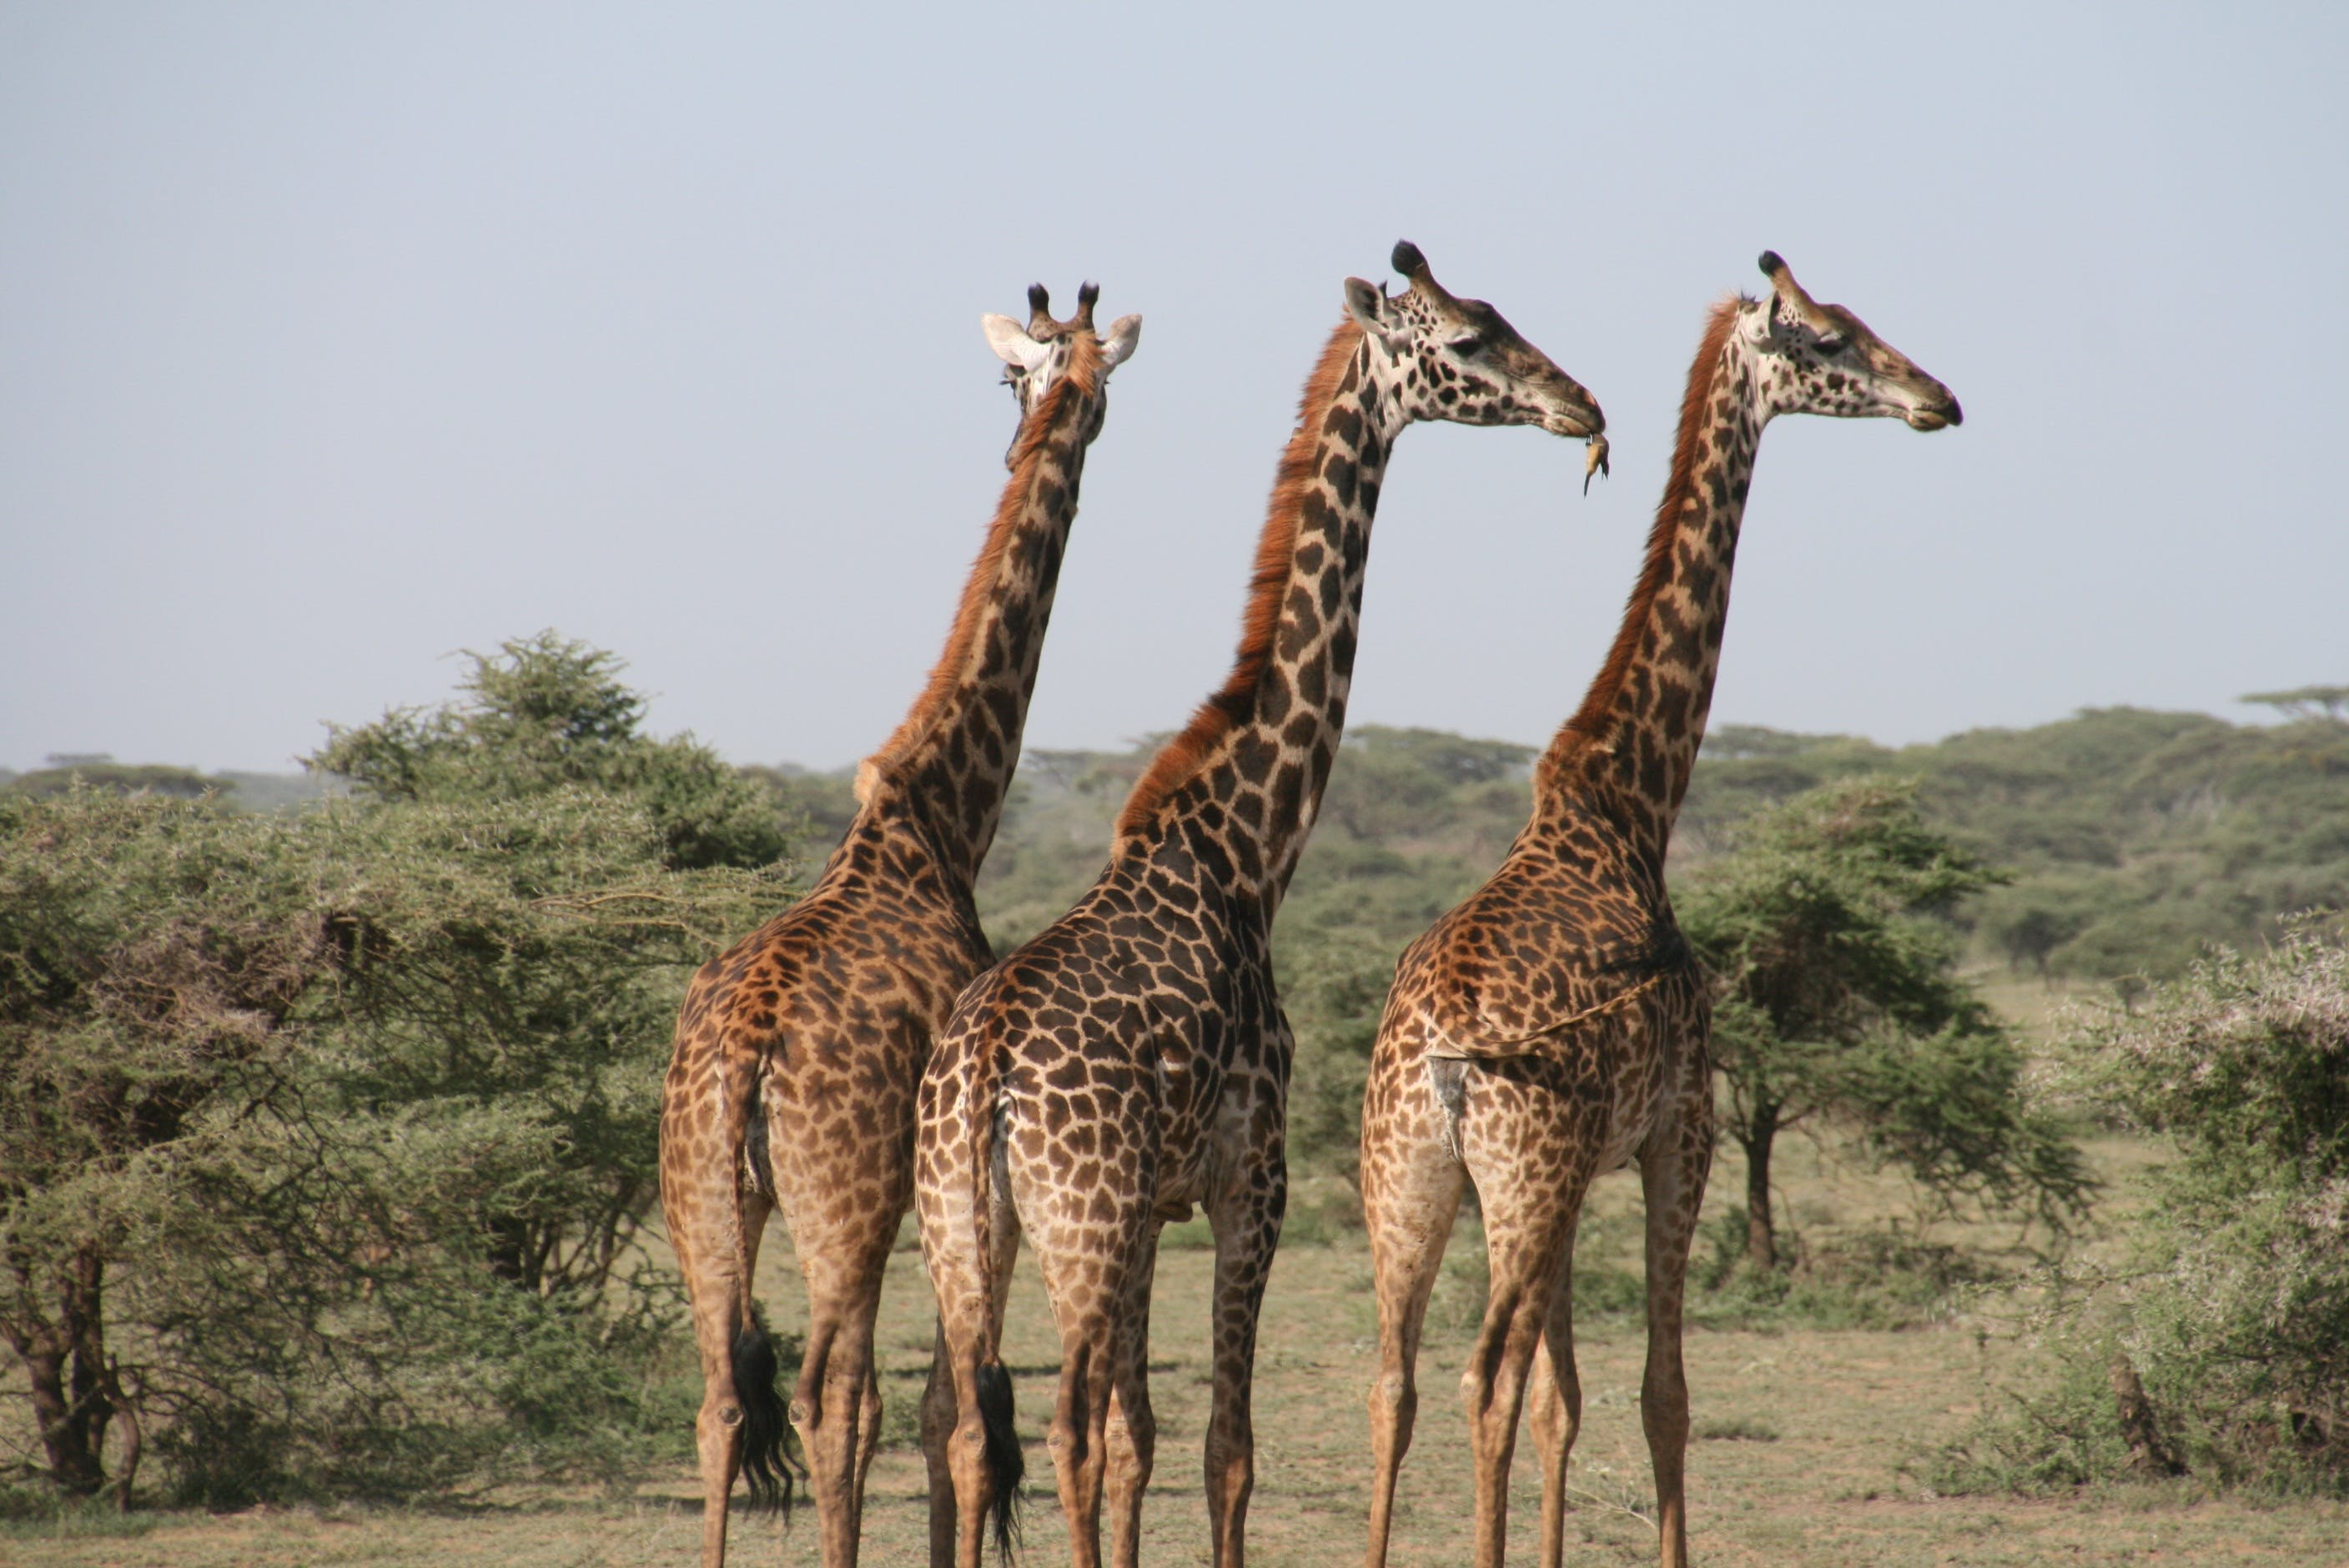 Three Giraffes on Land